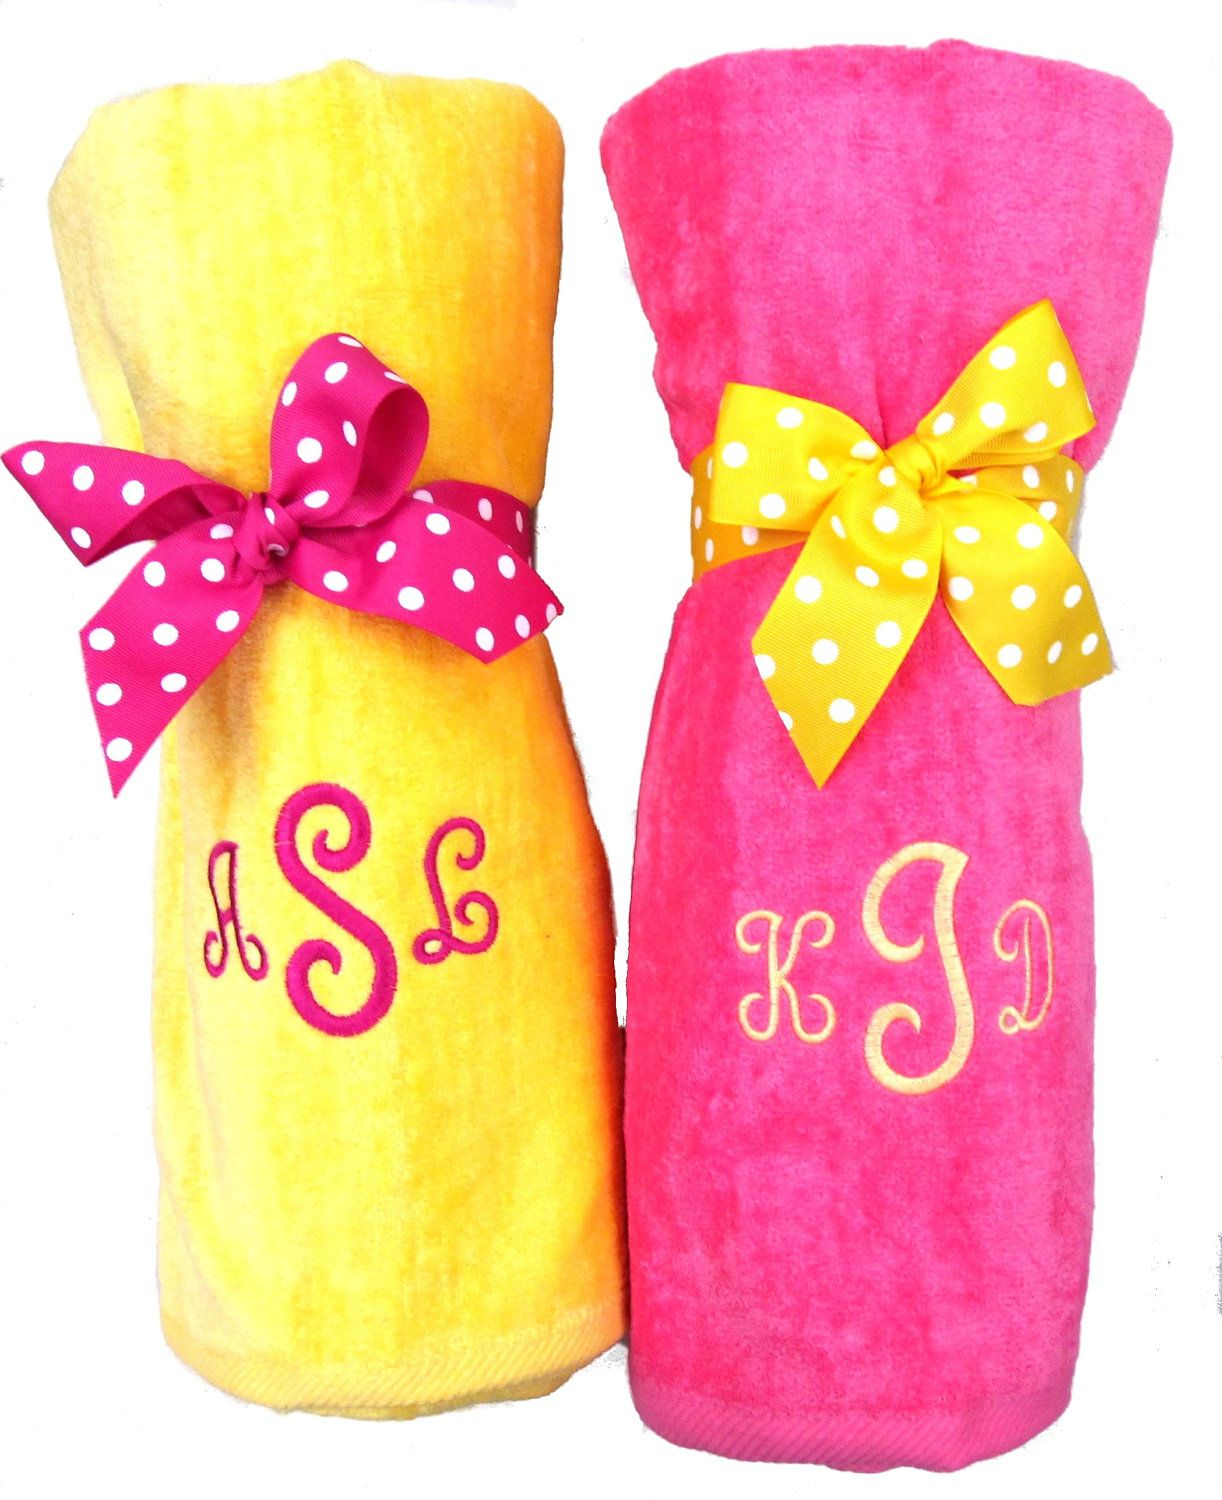 Monogrammed Beach Towels for Bridesmaids - Embroidered Beach Towel ...